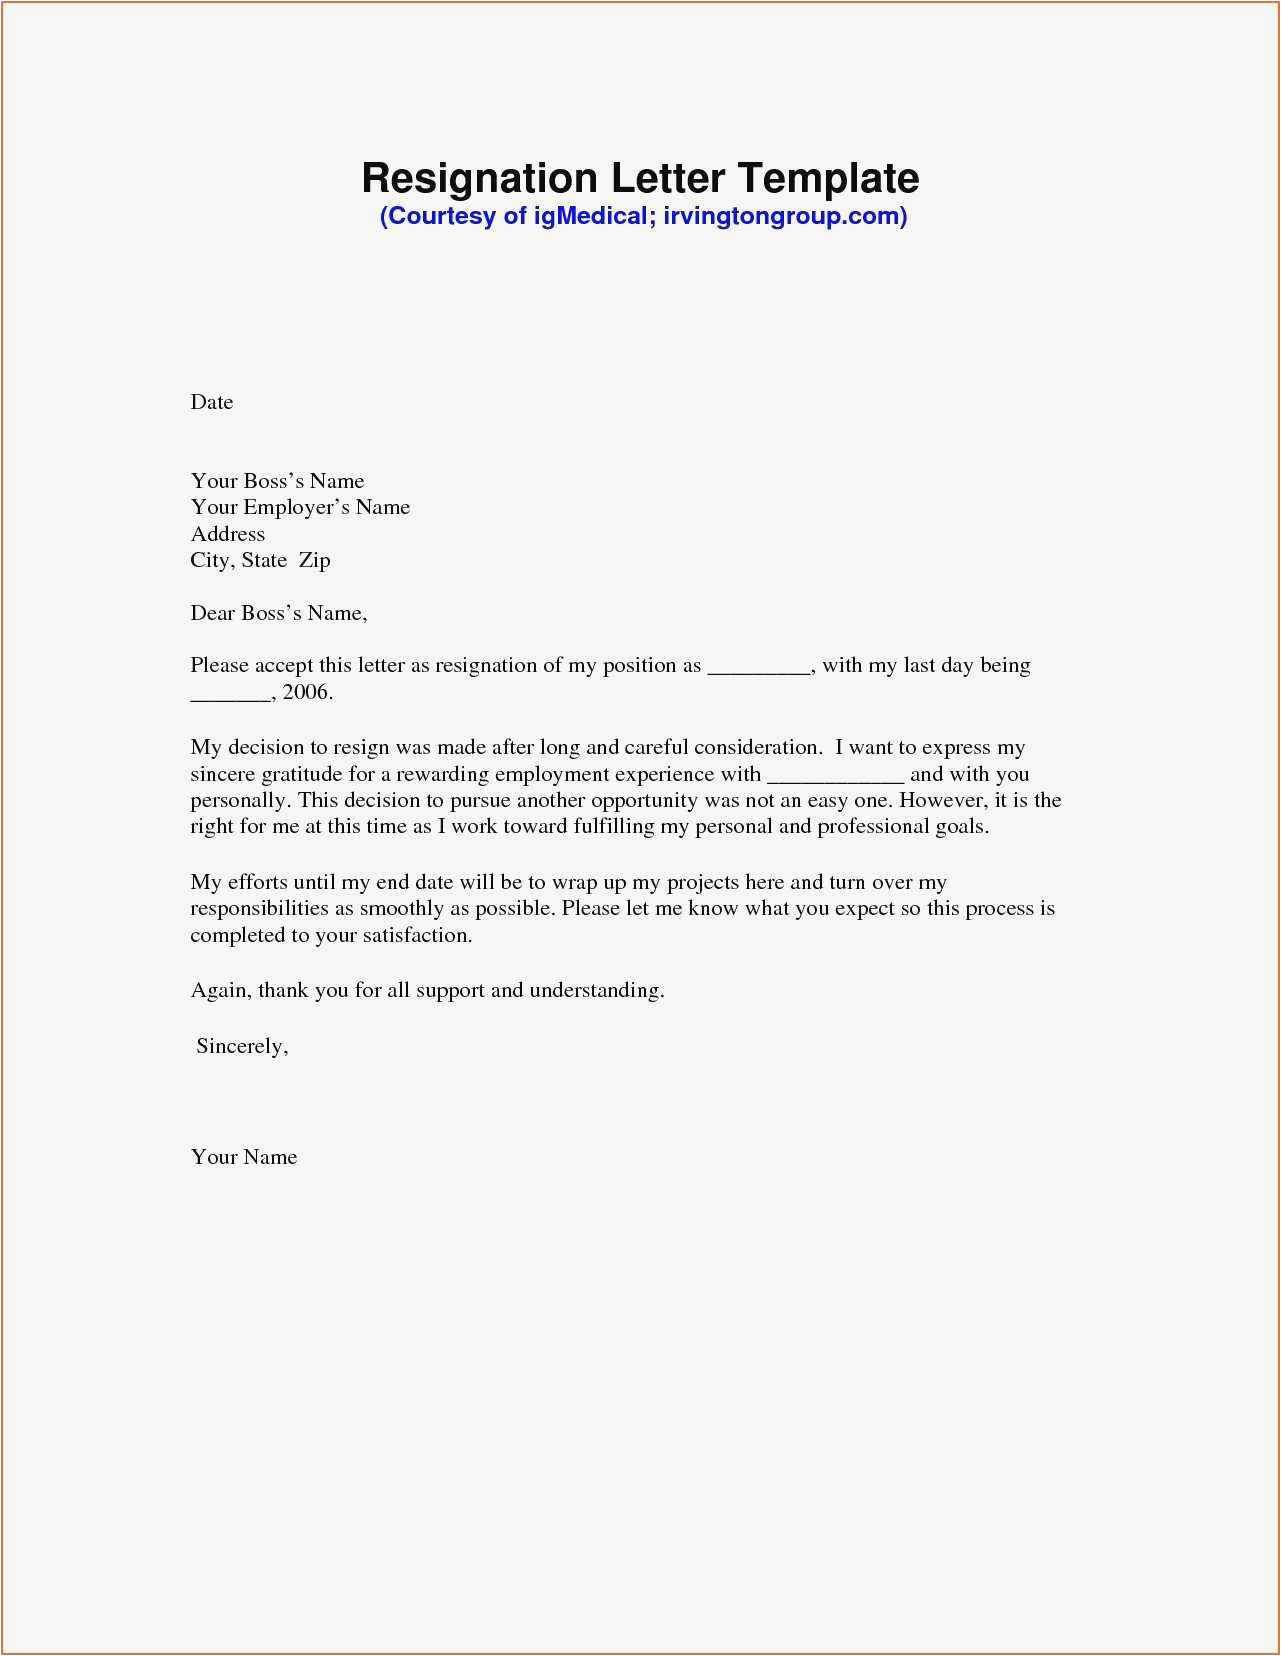 Letter Of Resignation Template What Should You Write Resignation Letter Sample Job Resignation Letter Formal Resignation Letter Sample